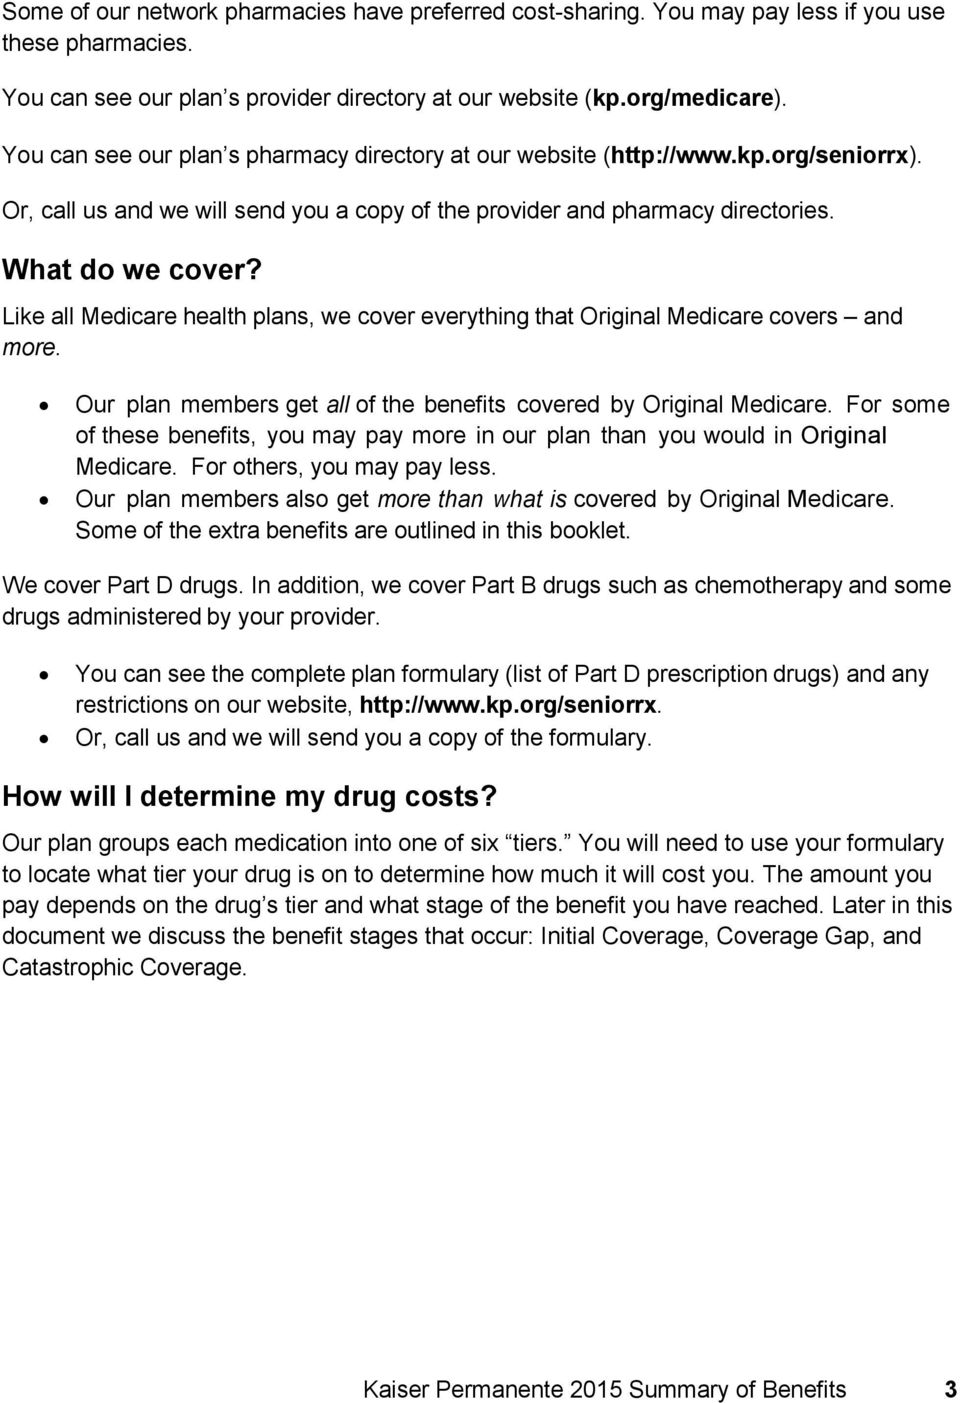 Like all Medicare health plans, we cover everything that Original Medicare covers and more. Our plan members get all of the benefits covered by Original Medicare.